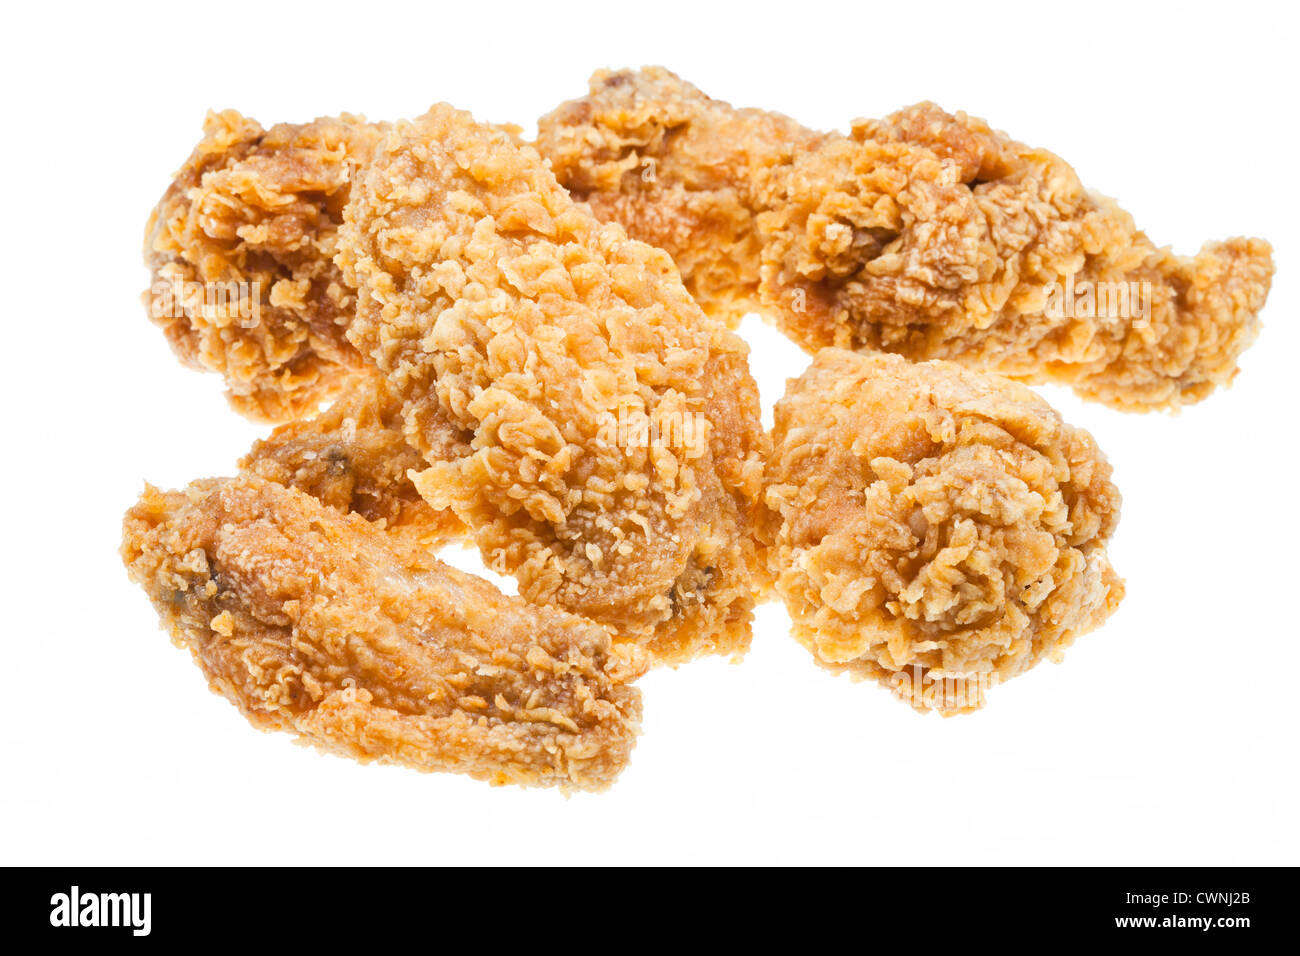 several hot fried chicken wings isolated white background - Stock Image